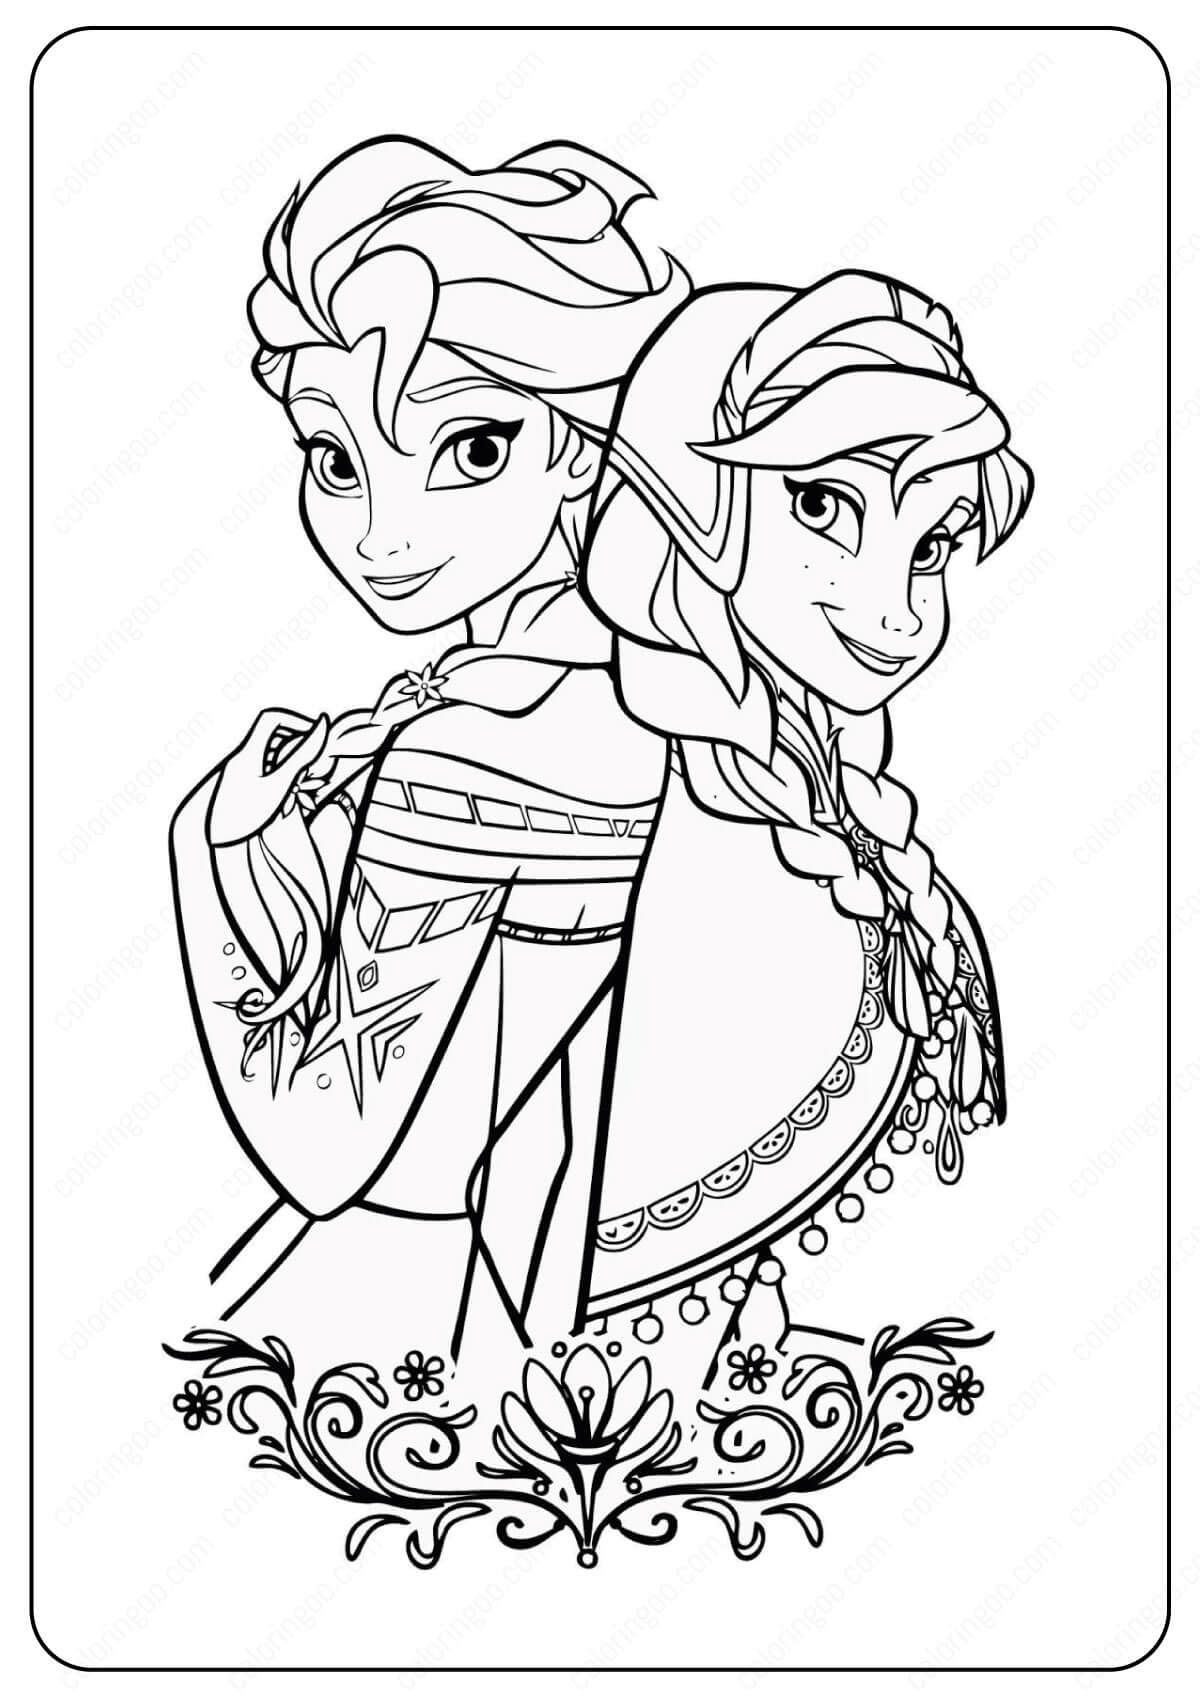 Free Printable Frozen Anna Elsa Coloring Pages In 2020 Disney Princess Coloring Pages Elsa Coloring Pages Frozen Coloring Pages